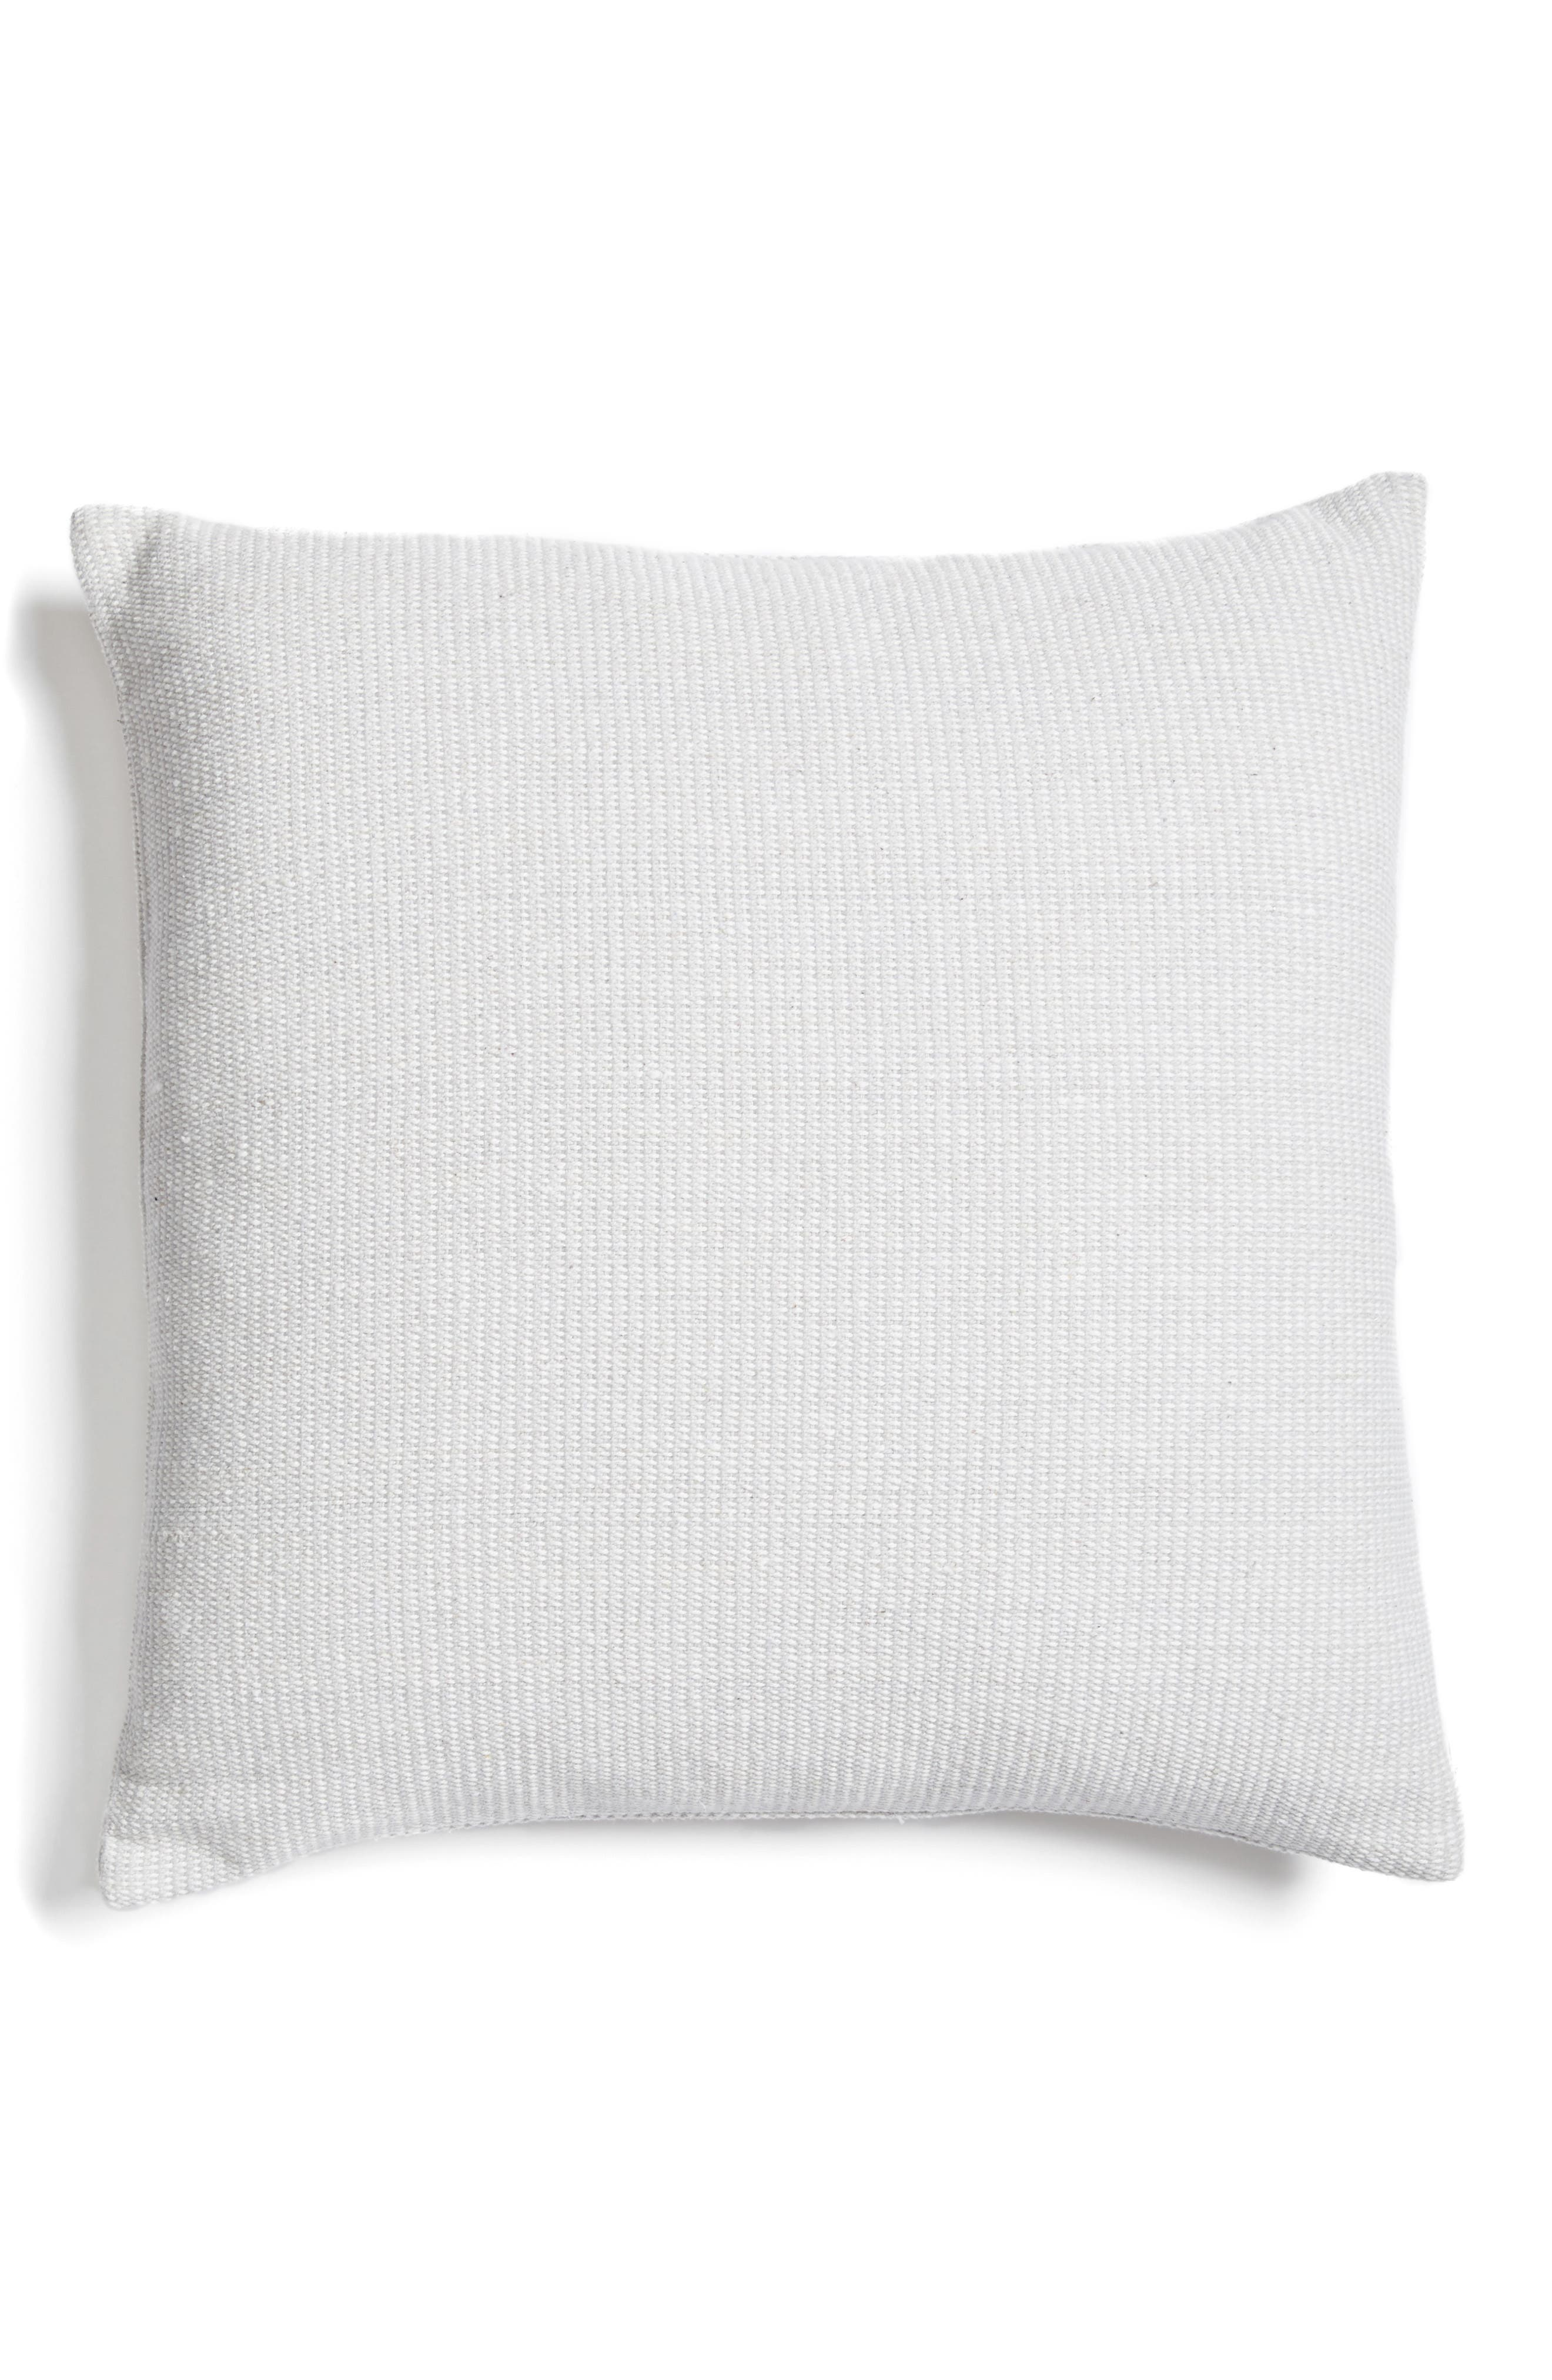 Structure Pillow,                             Alternate thumbnail 2, color,                             White/ Grey